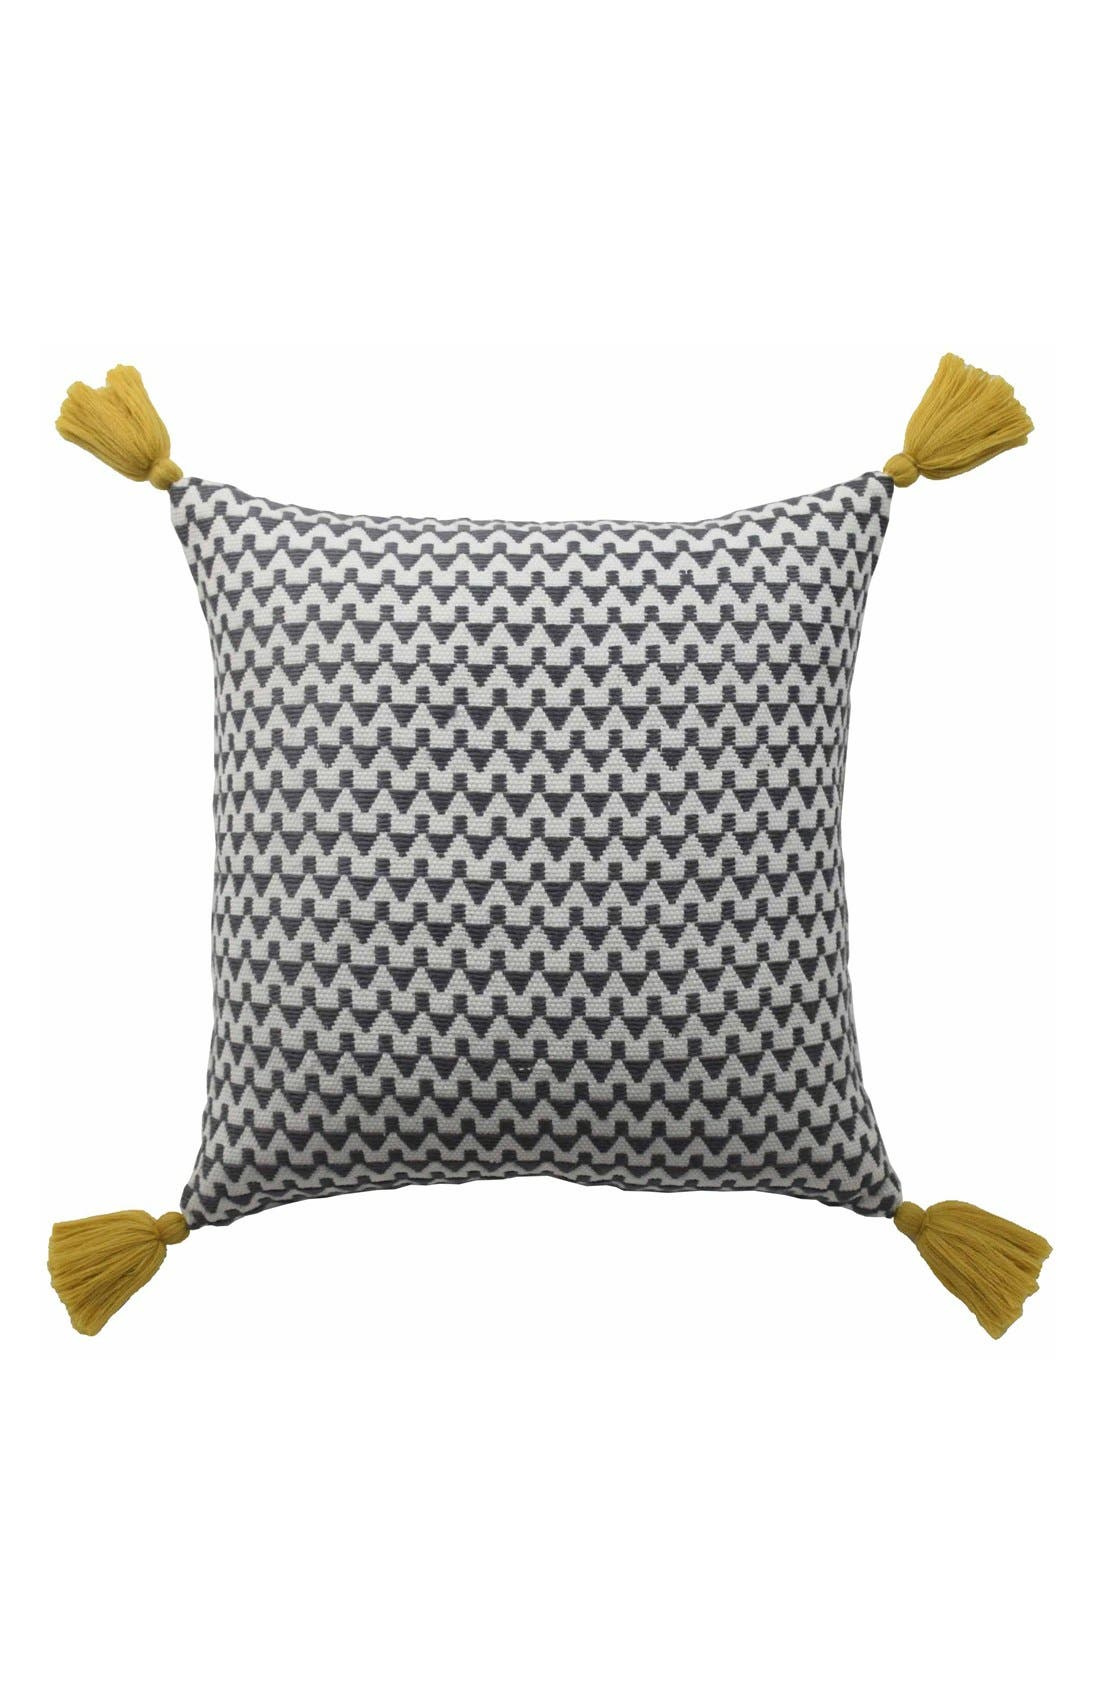 Alternate Image 1 Selected - Blissliving Home 'Winnie' Pillow